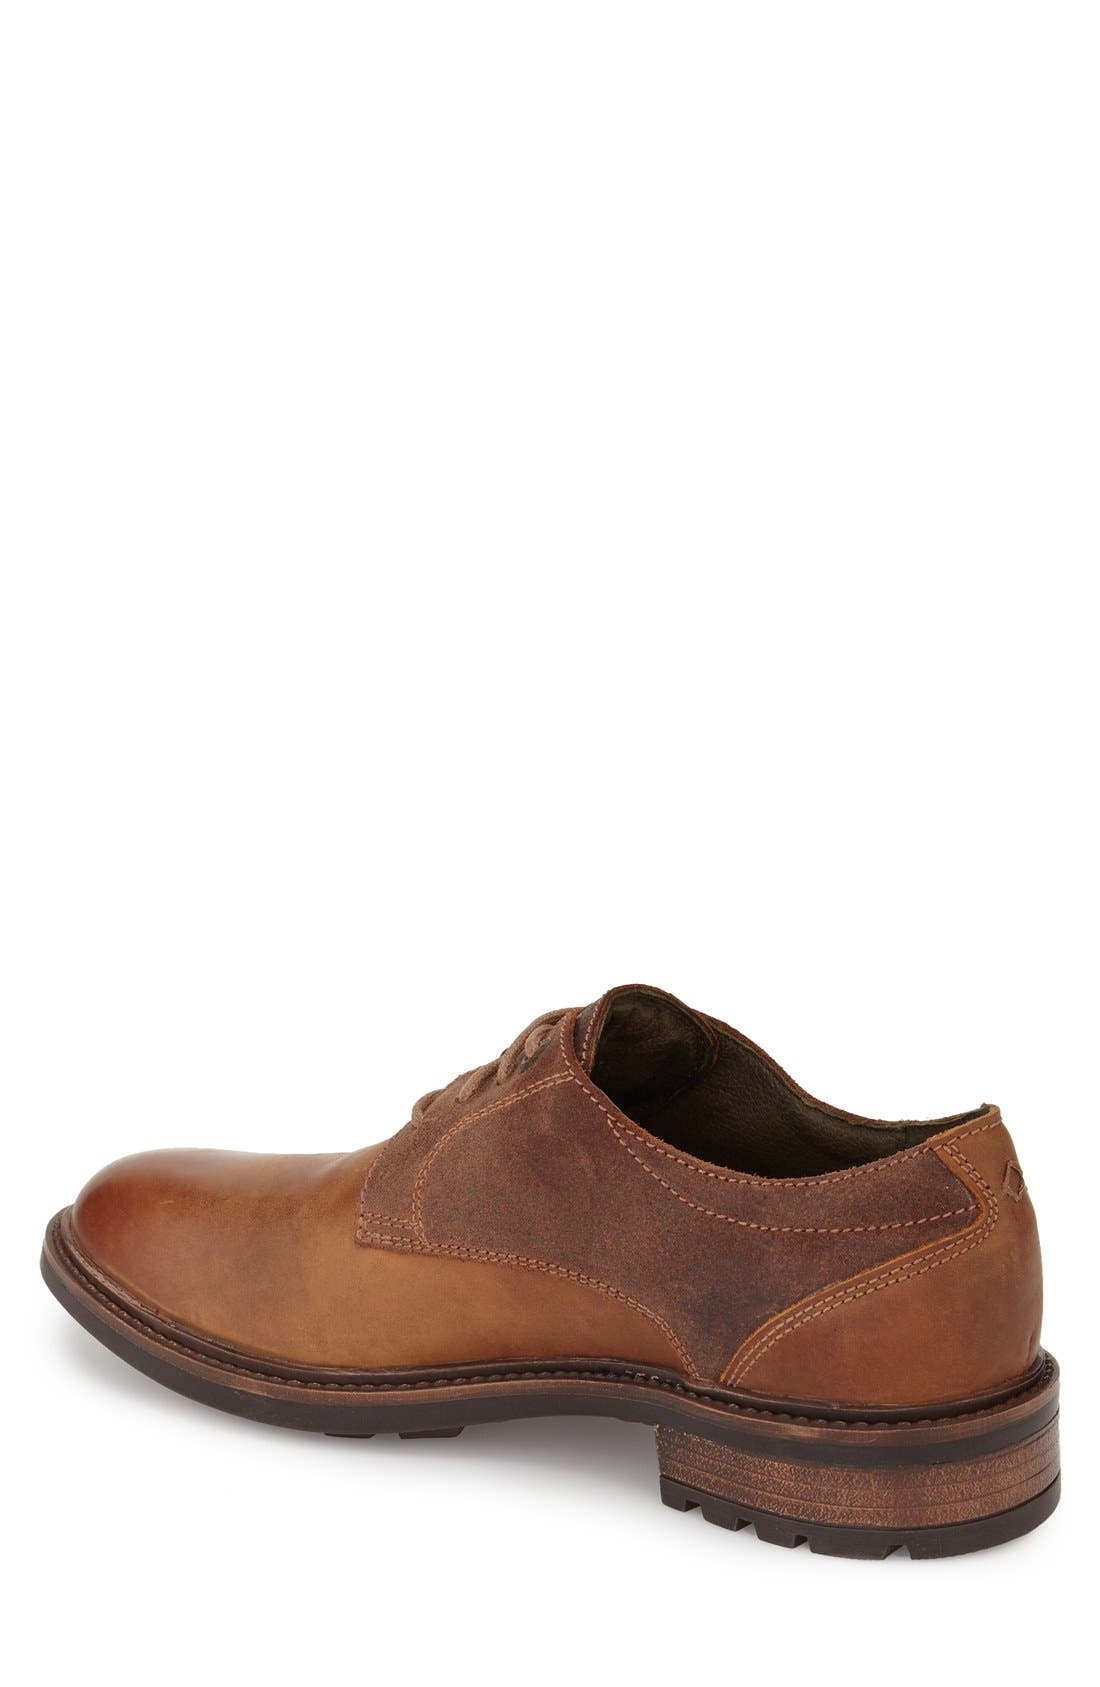 Oscar Plain Toe Derby,                             Alternate thumbnail 2, color,                             CASTAGNE LEATHER